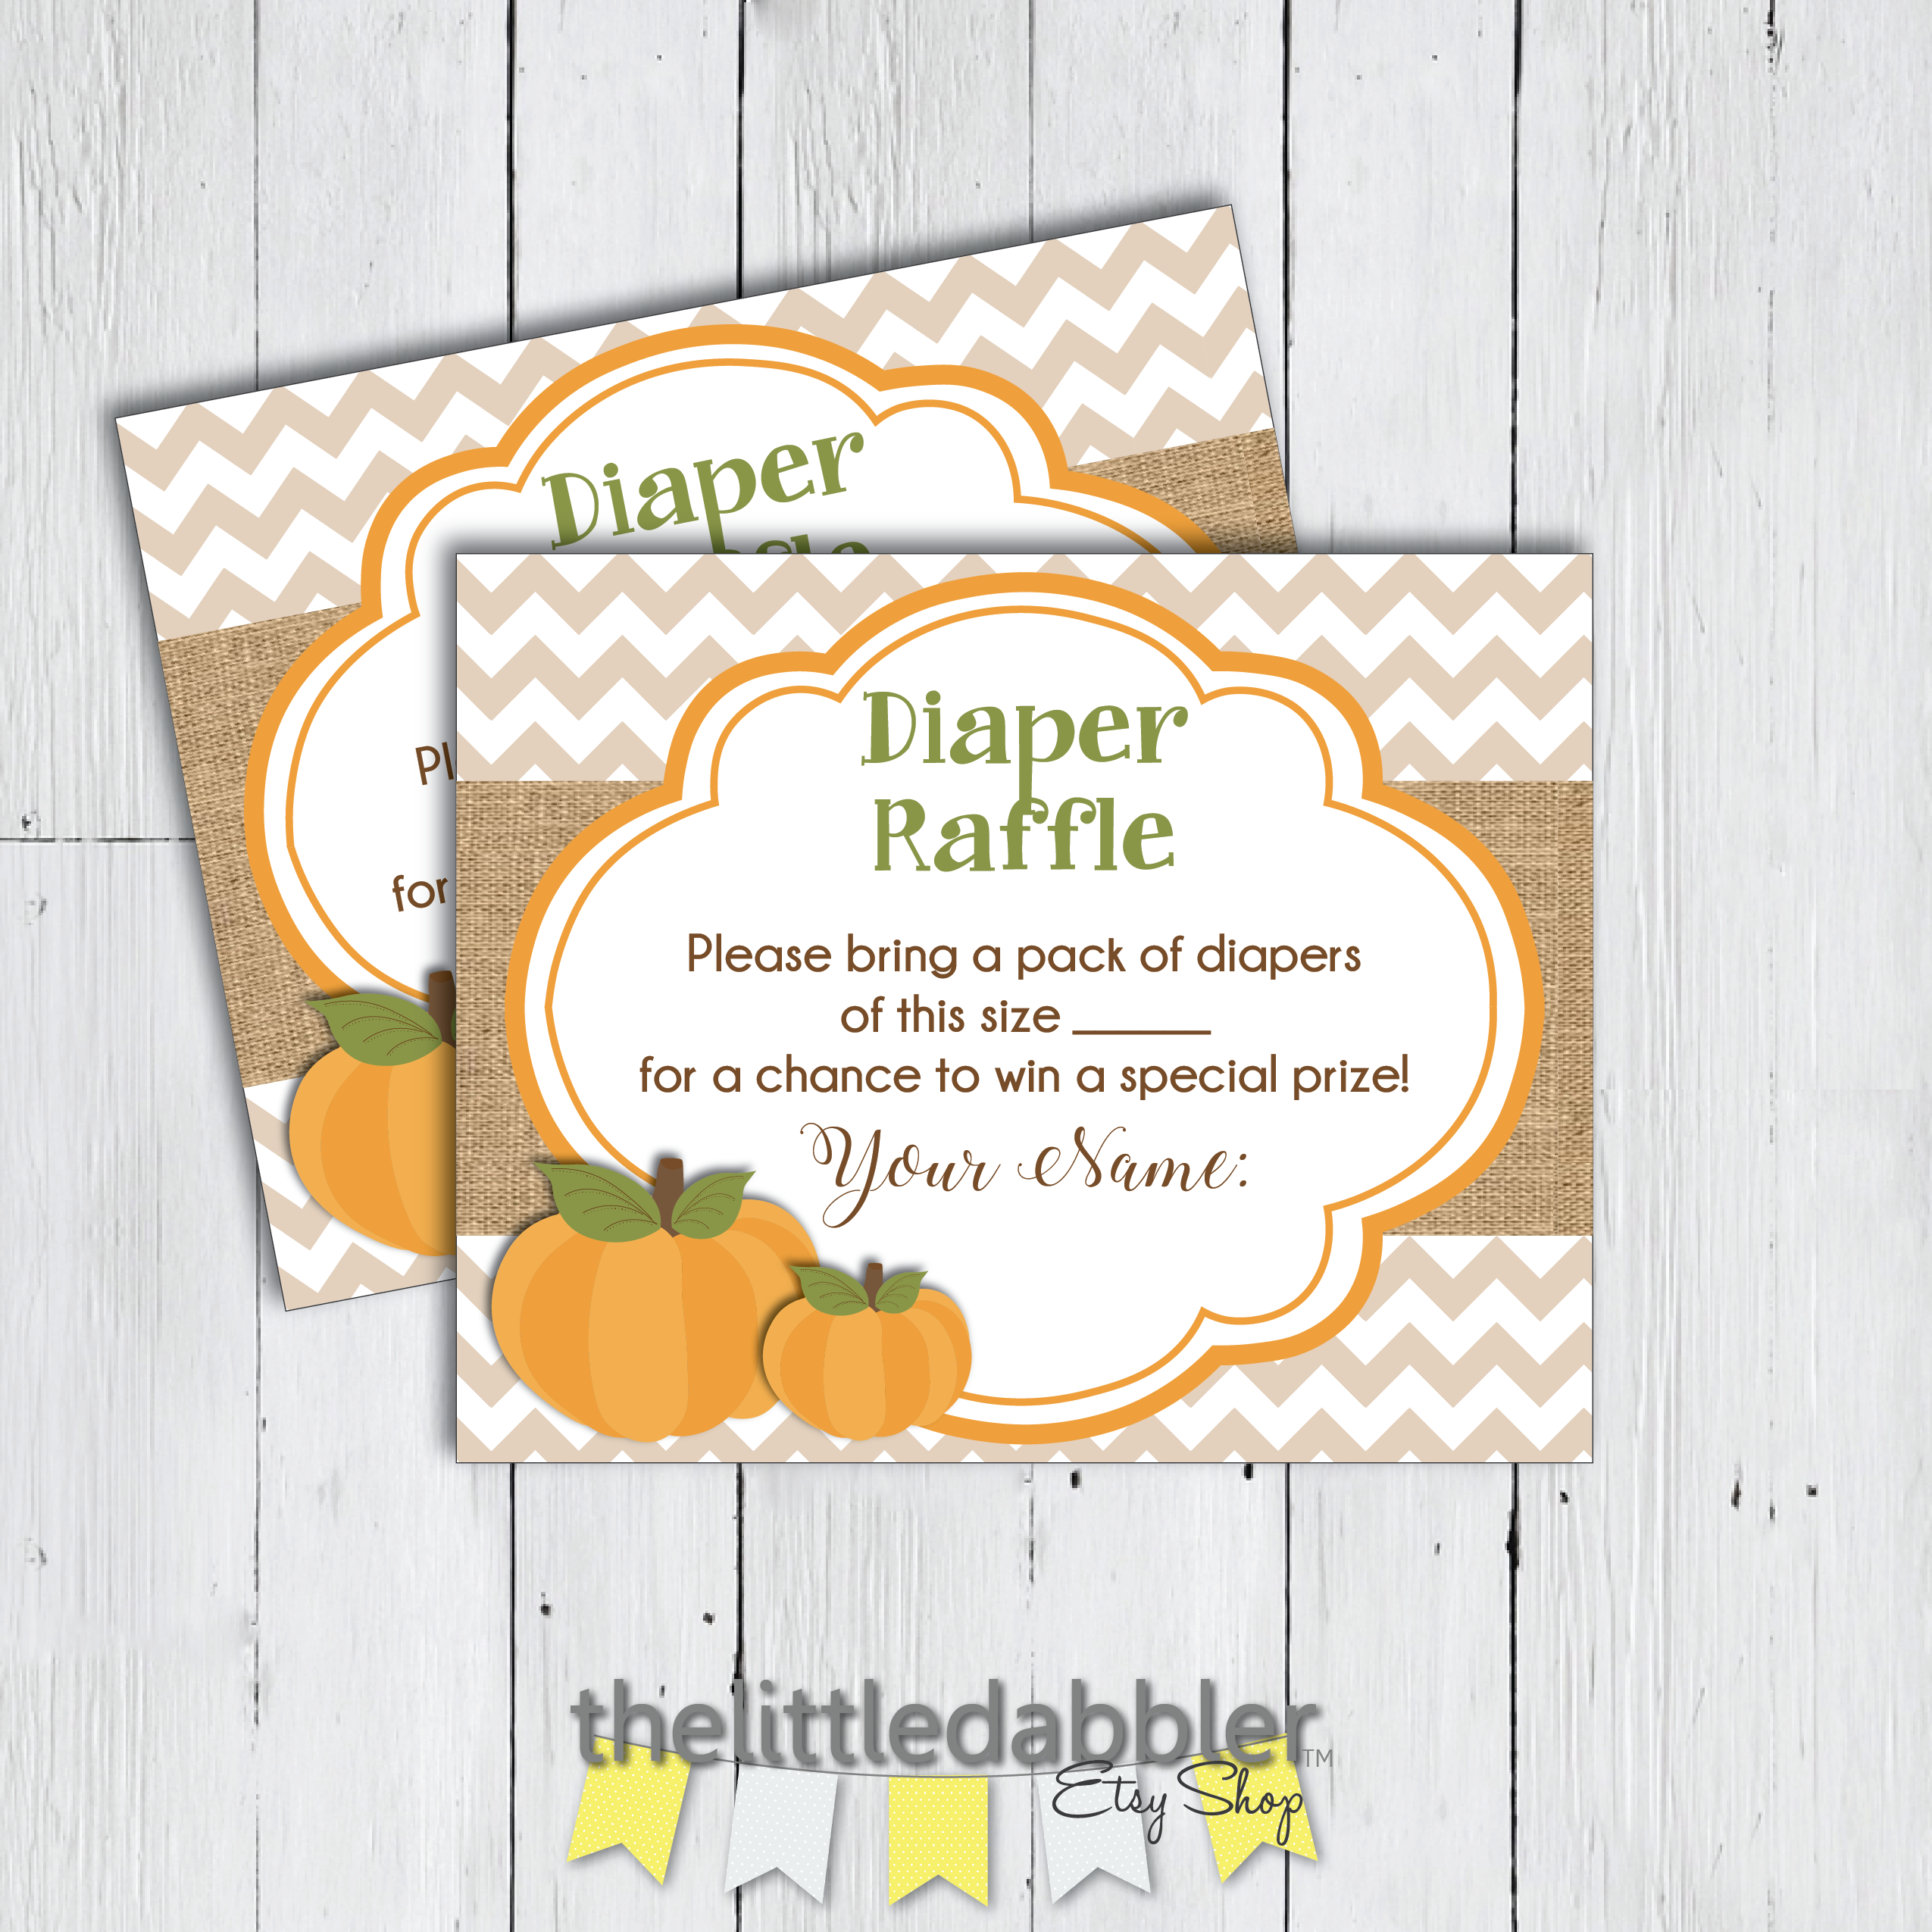 Fall Baby Shower Diaper Raffle Ticket from TheLittleDabbler Etsy Shop